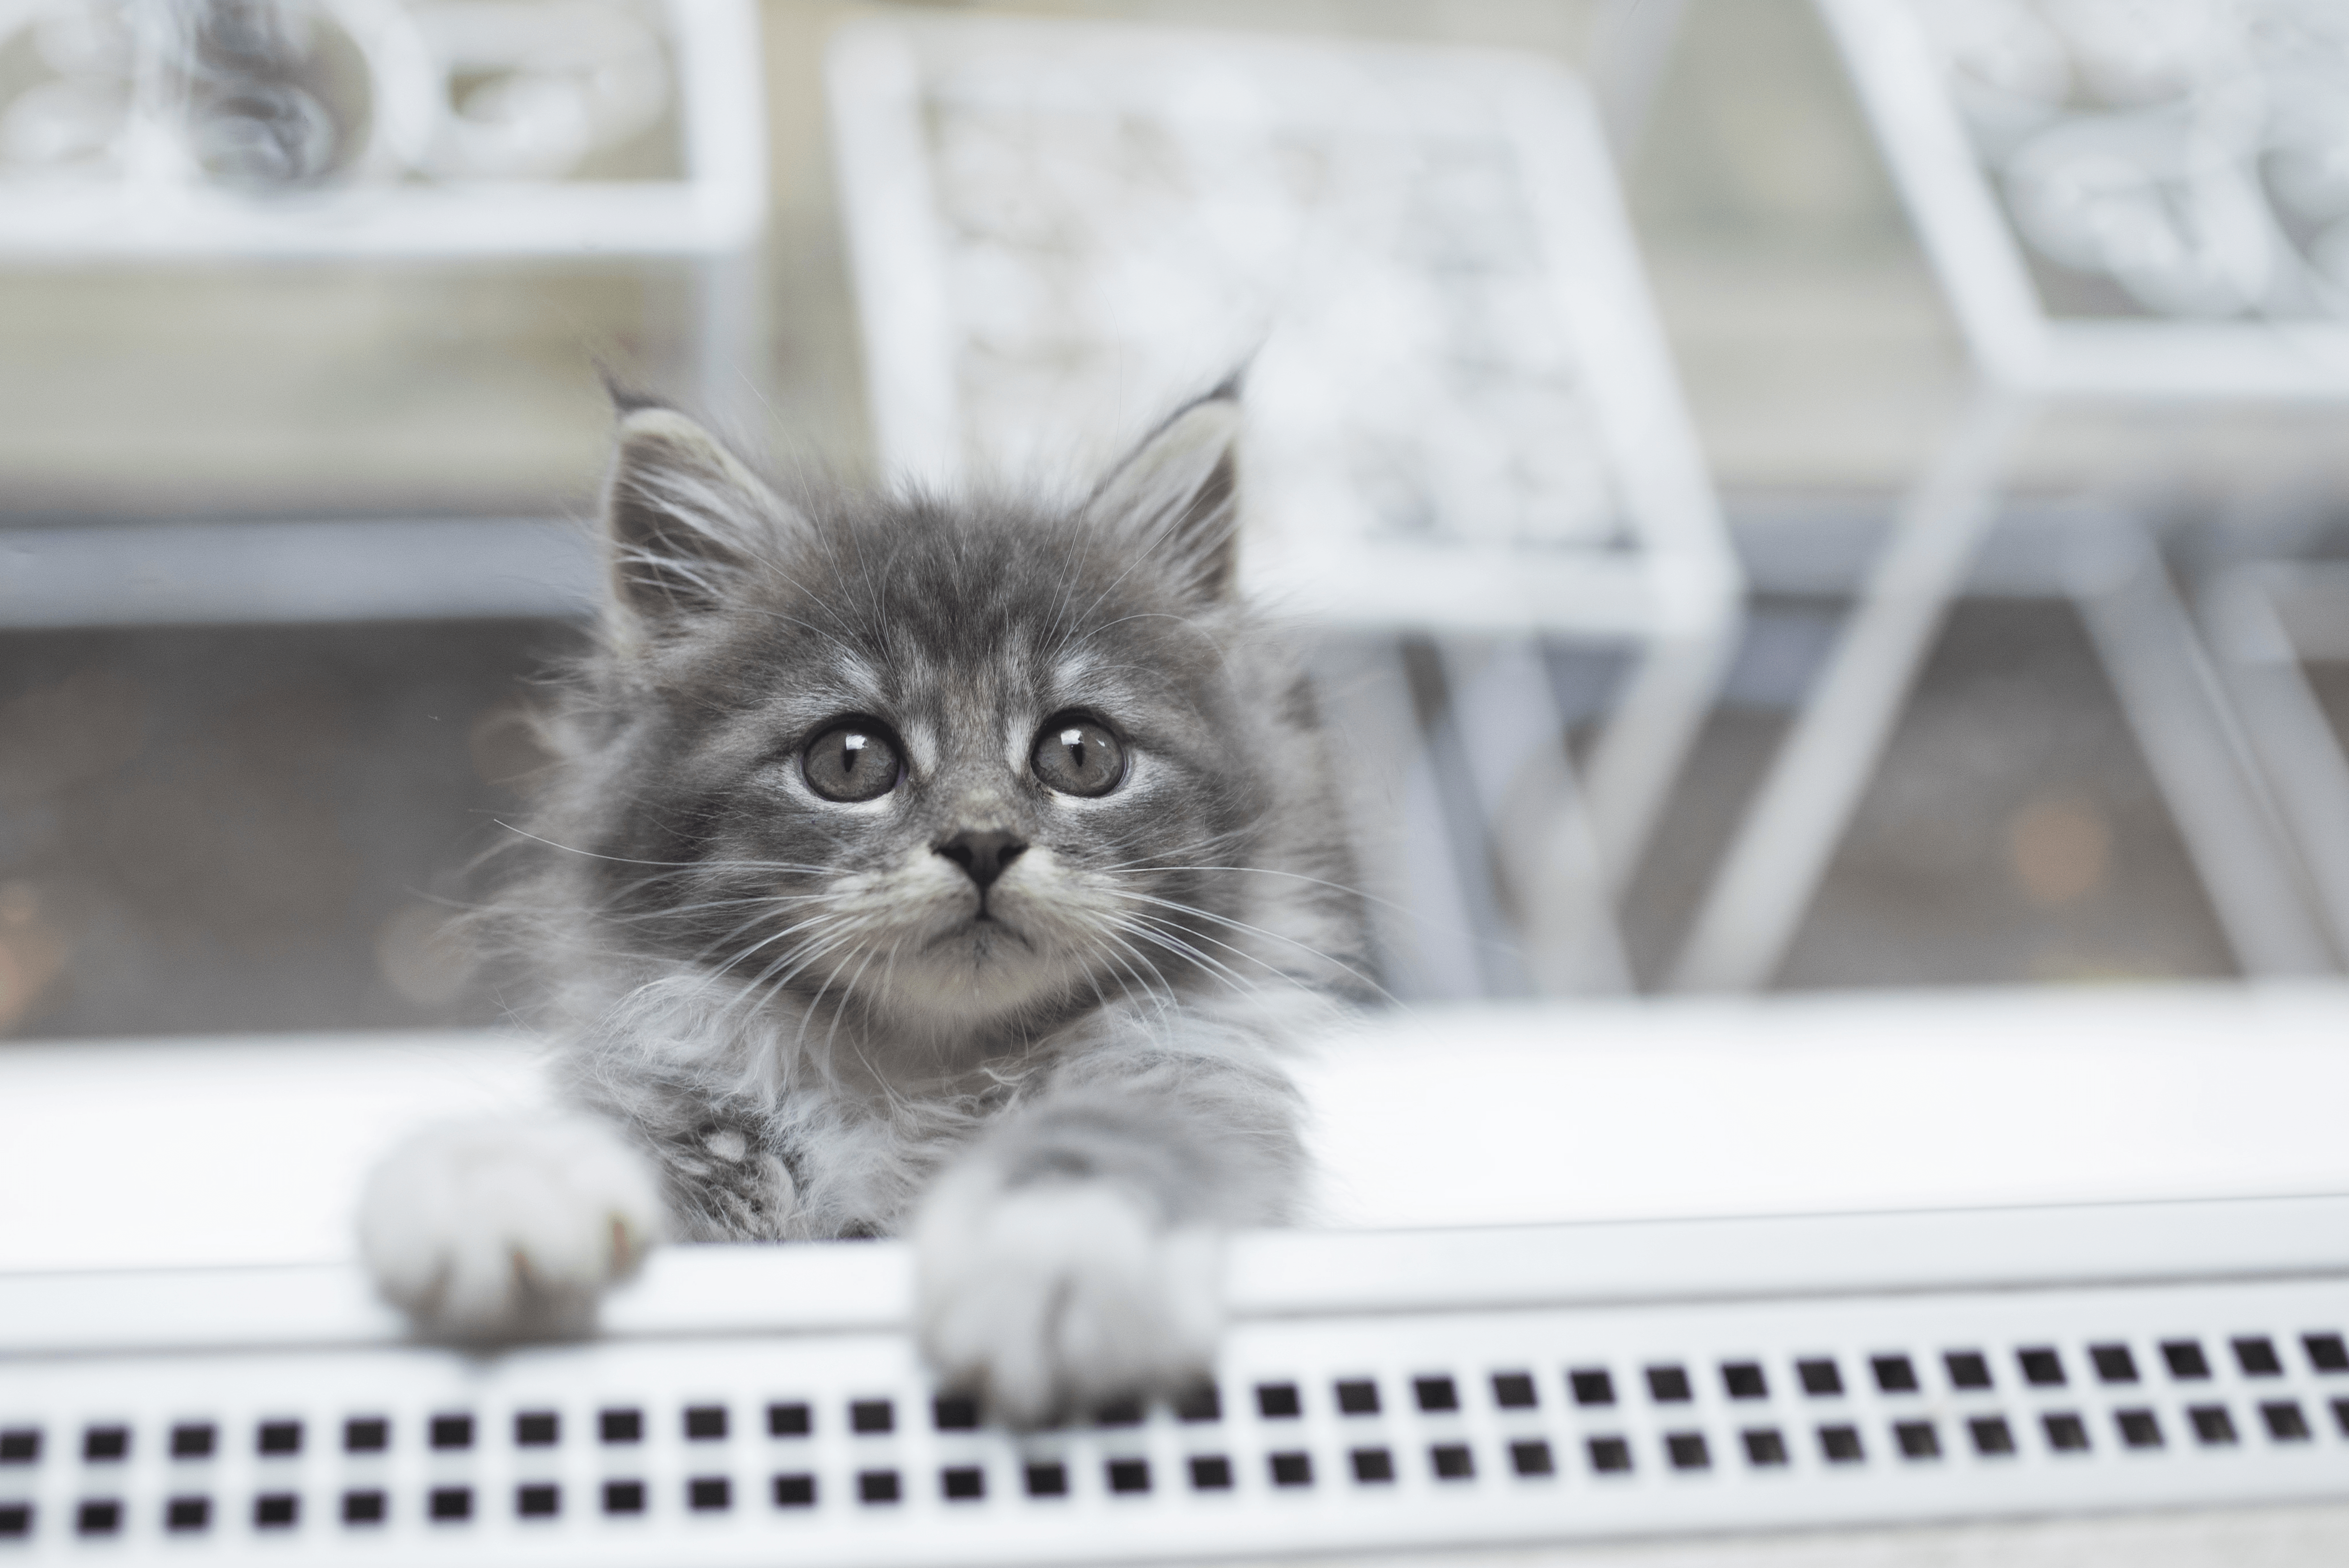 One Thing My Cat Taught Me About Faith